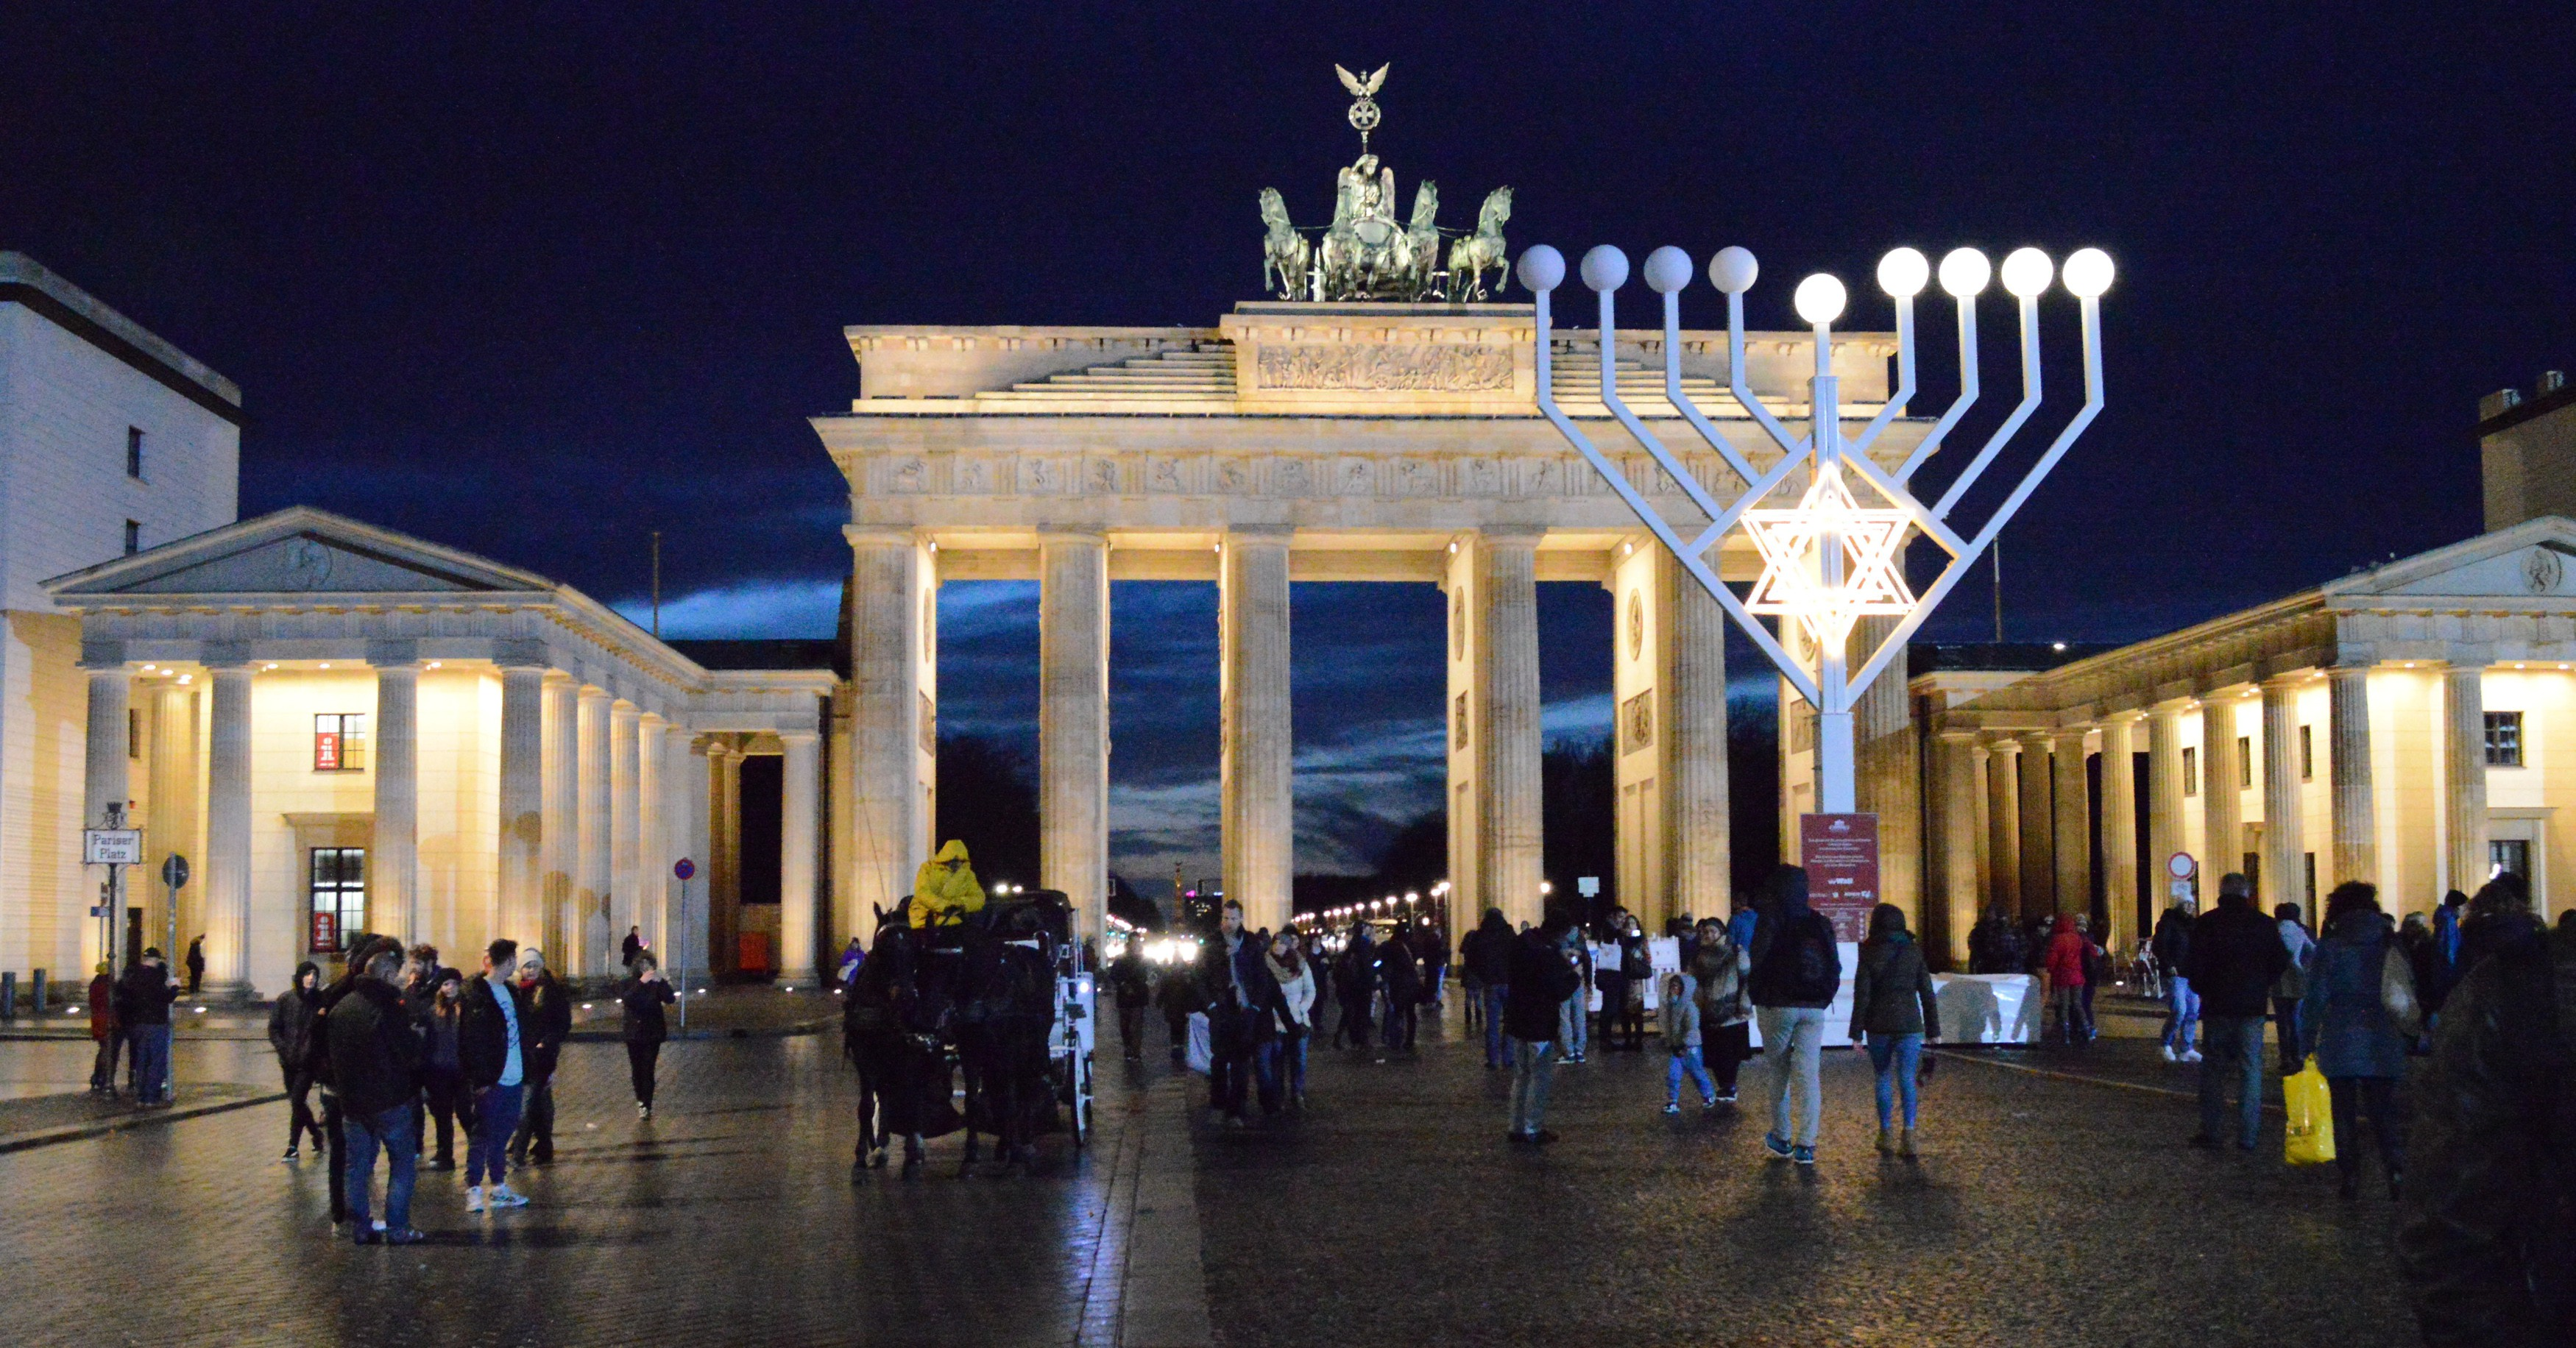 A Hanukkah menorah stands in front of Brandenburg Gate